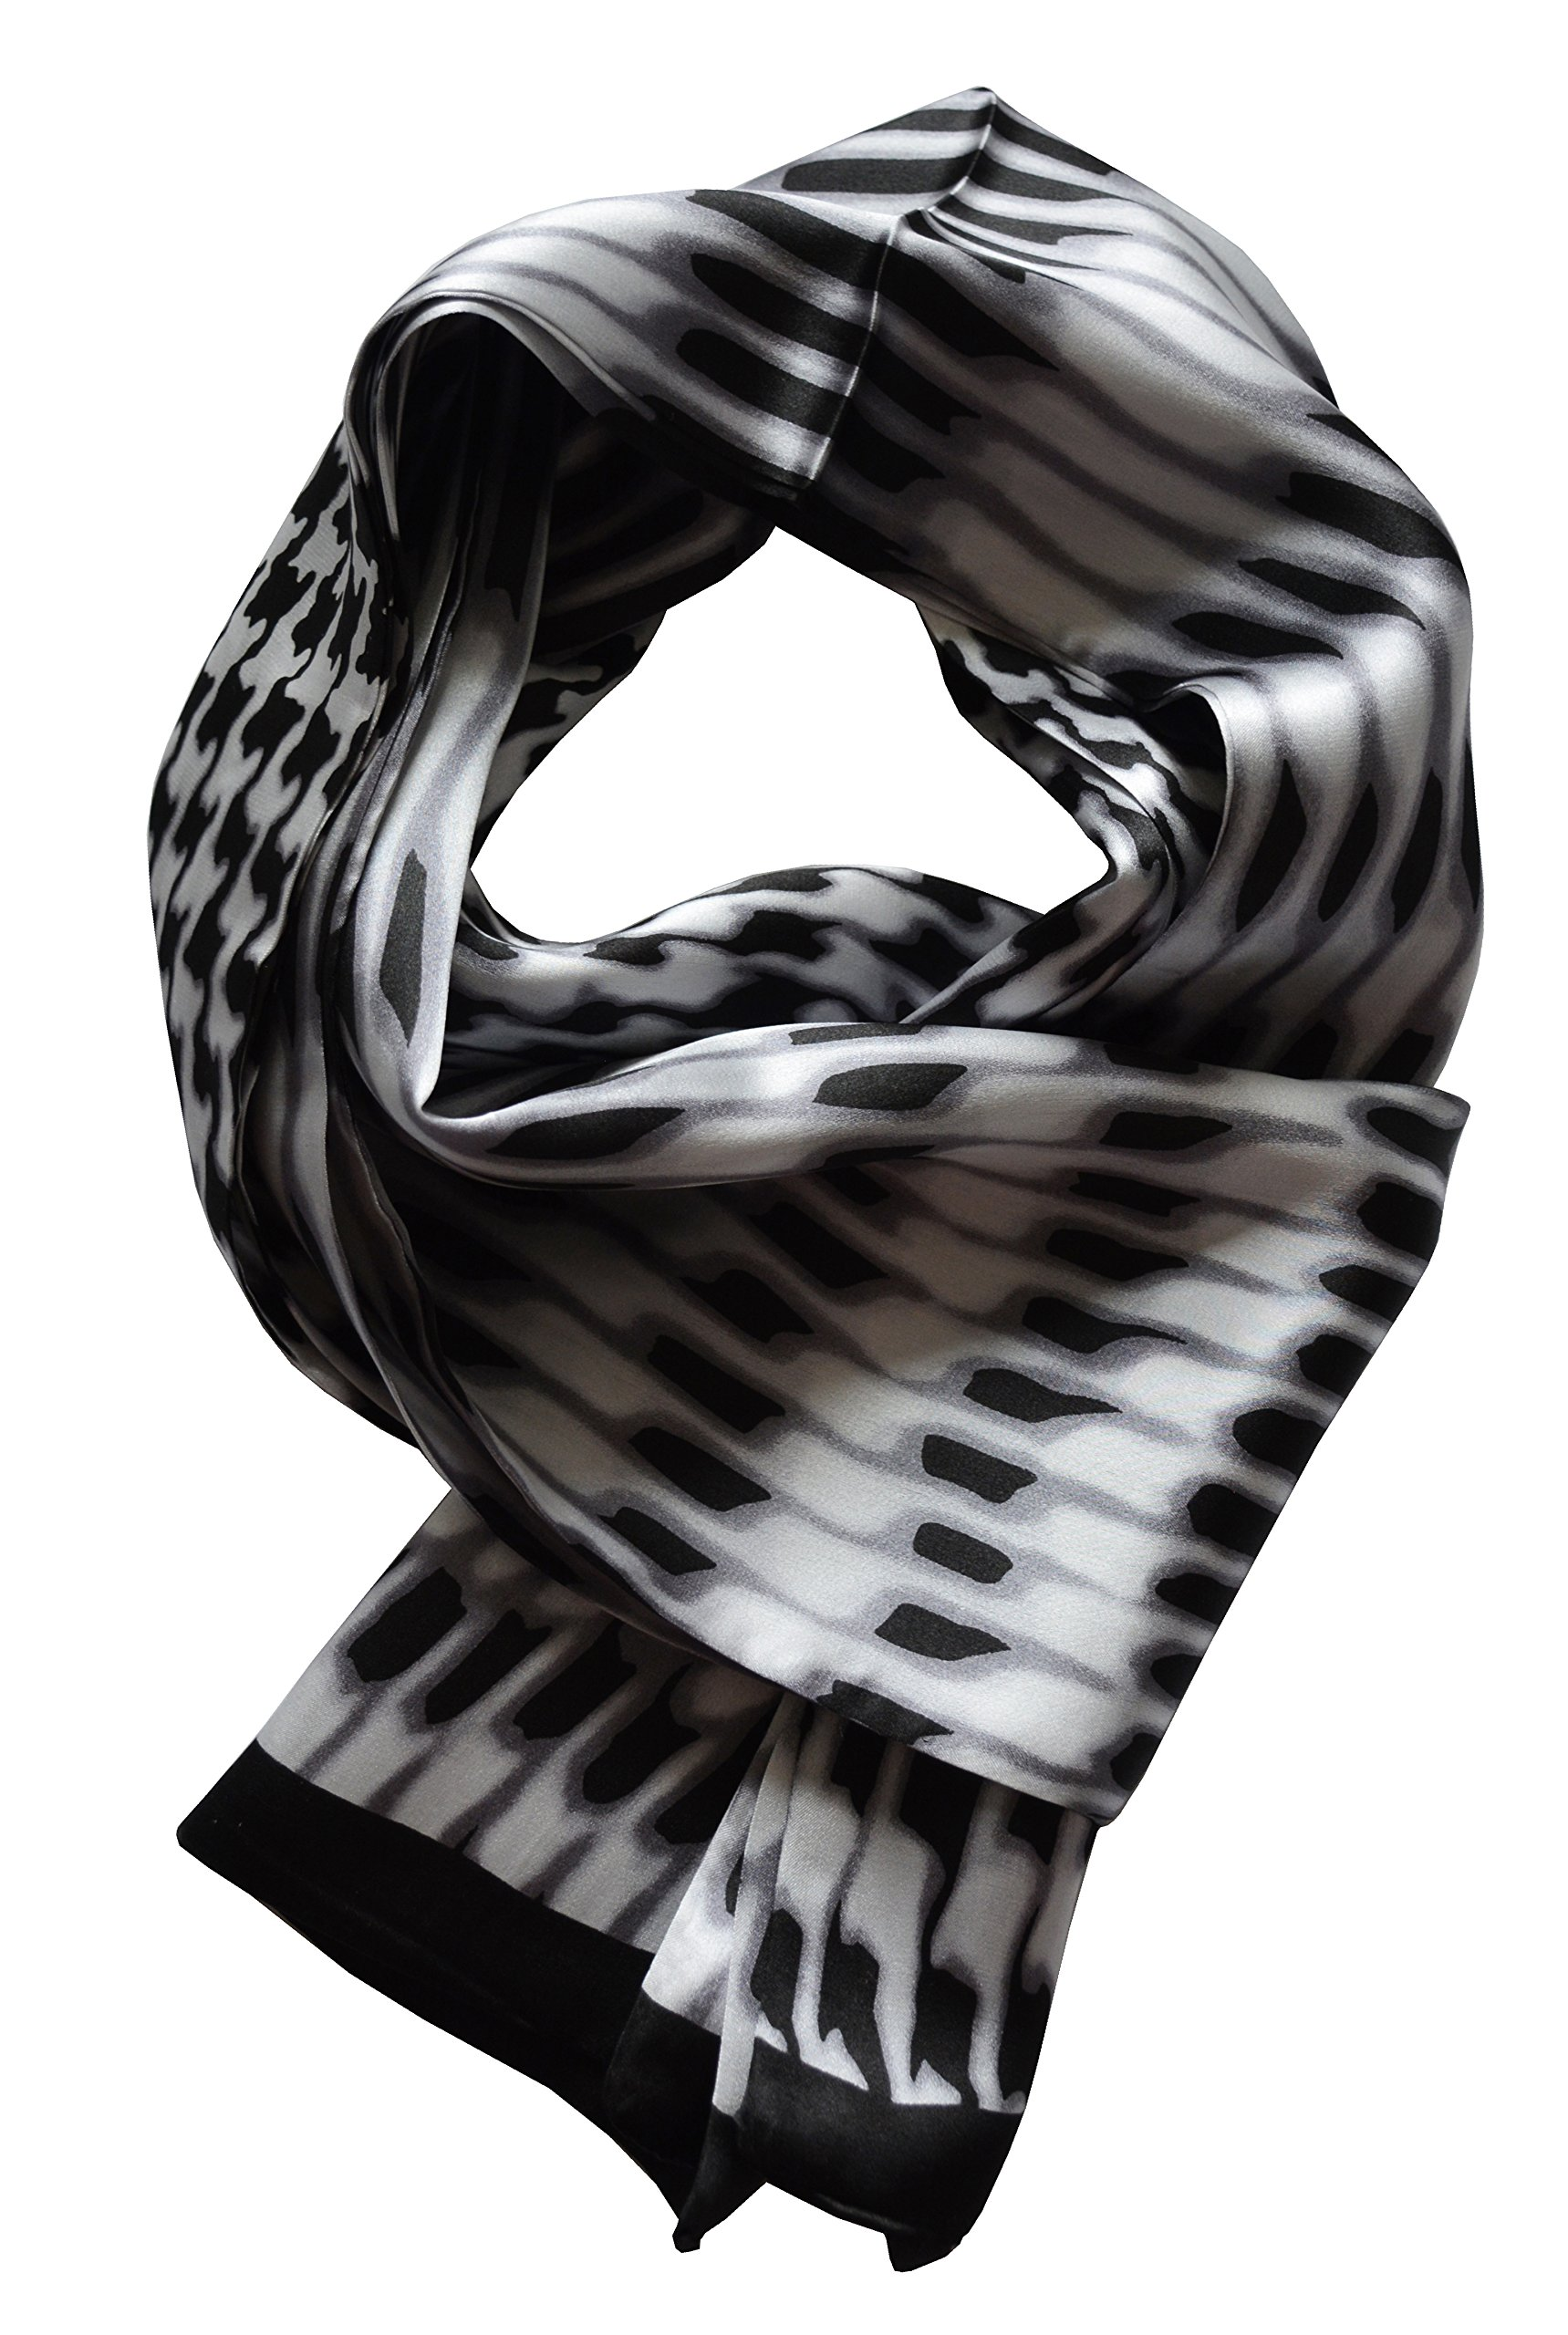 YSSP, BW houndstooth 2 63'' x 11'' Man's 100 Pure silk scarf wrap Accessory gift